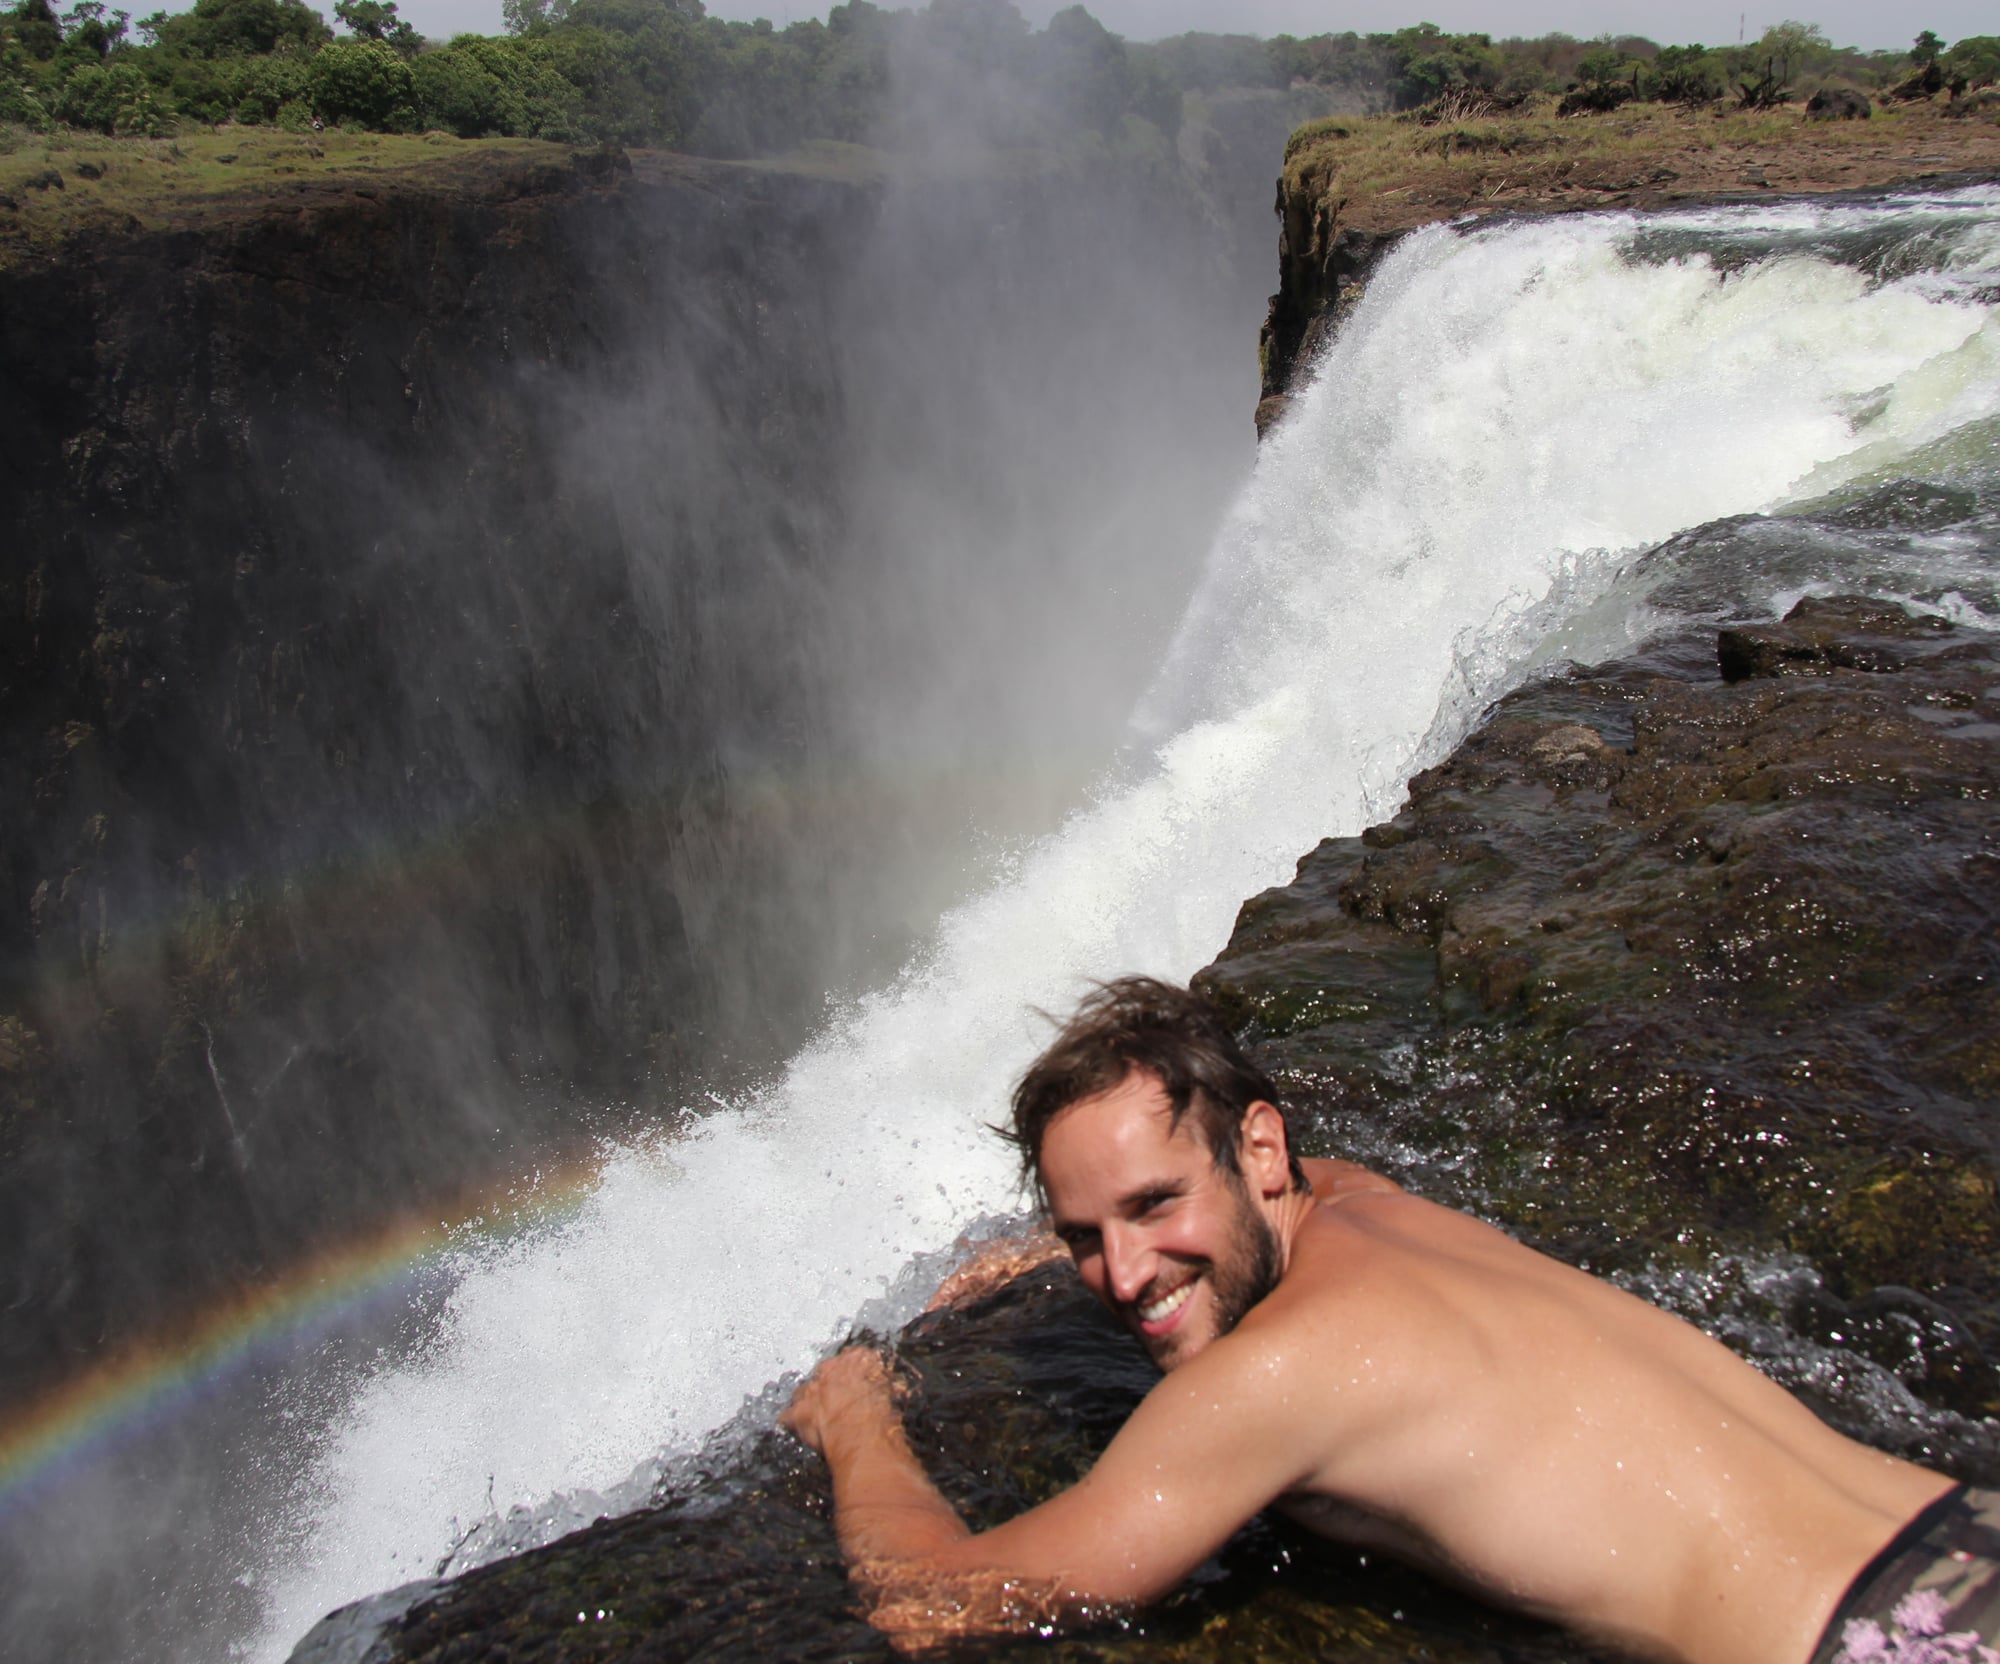 Swim in Devil's Pool at Victoria Falls in Africa